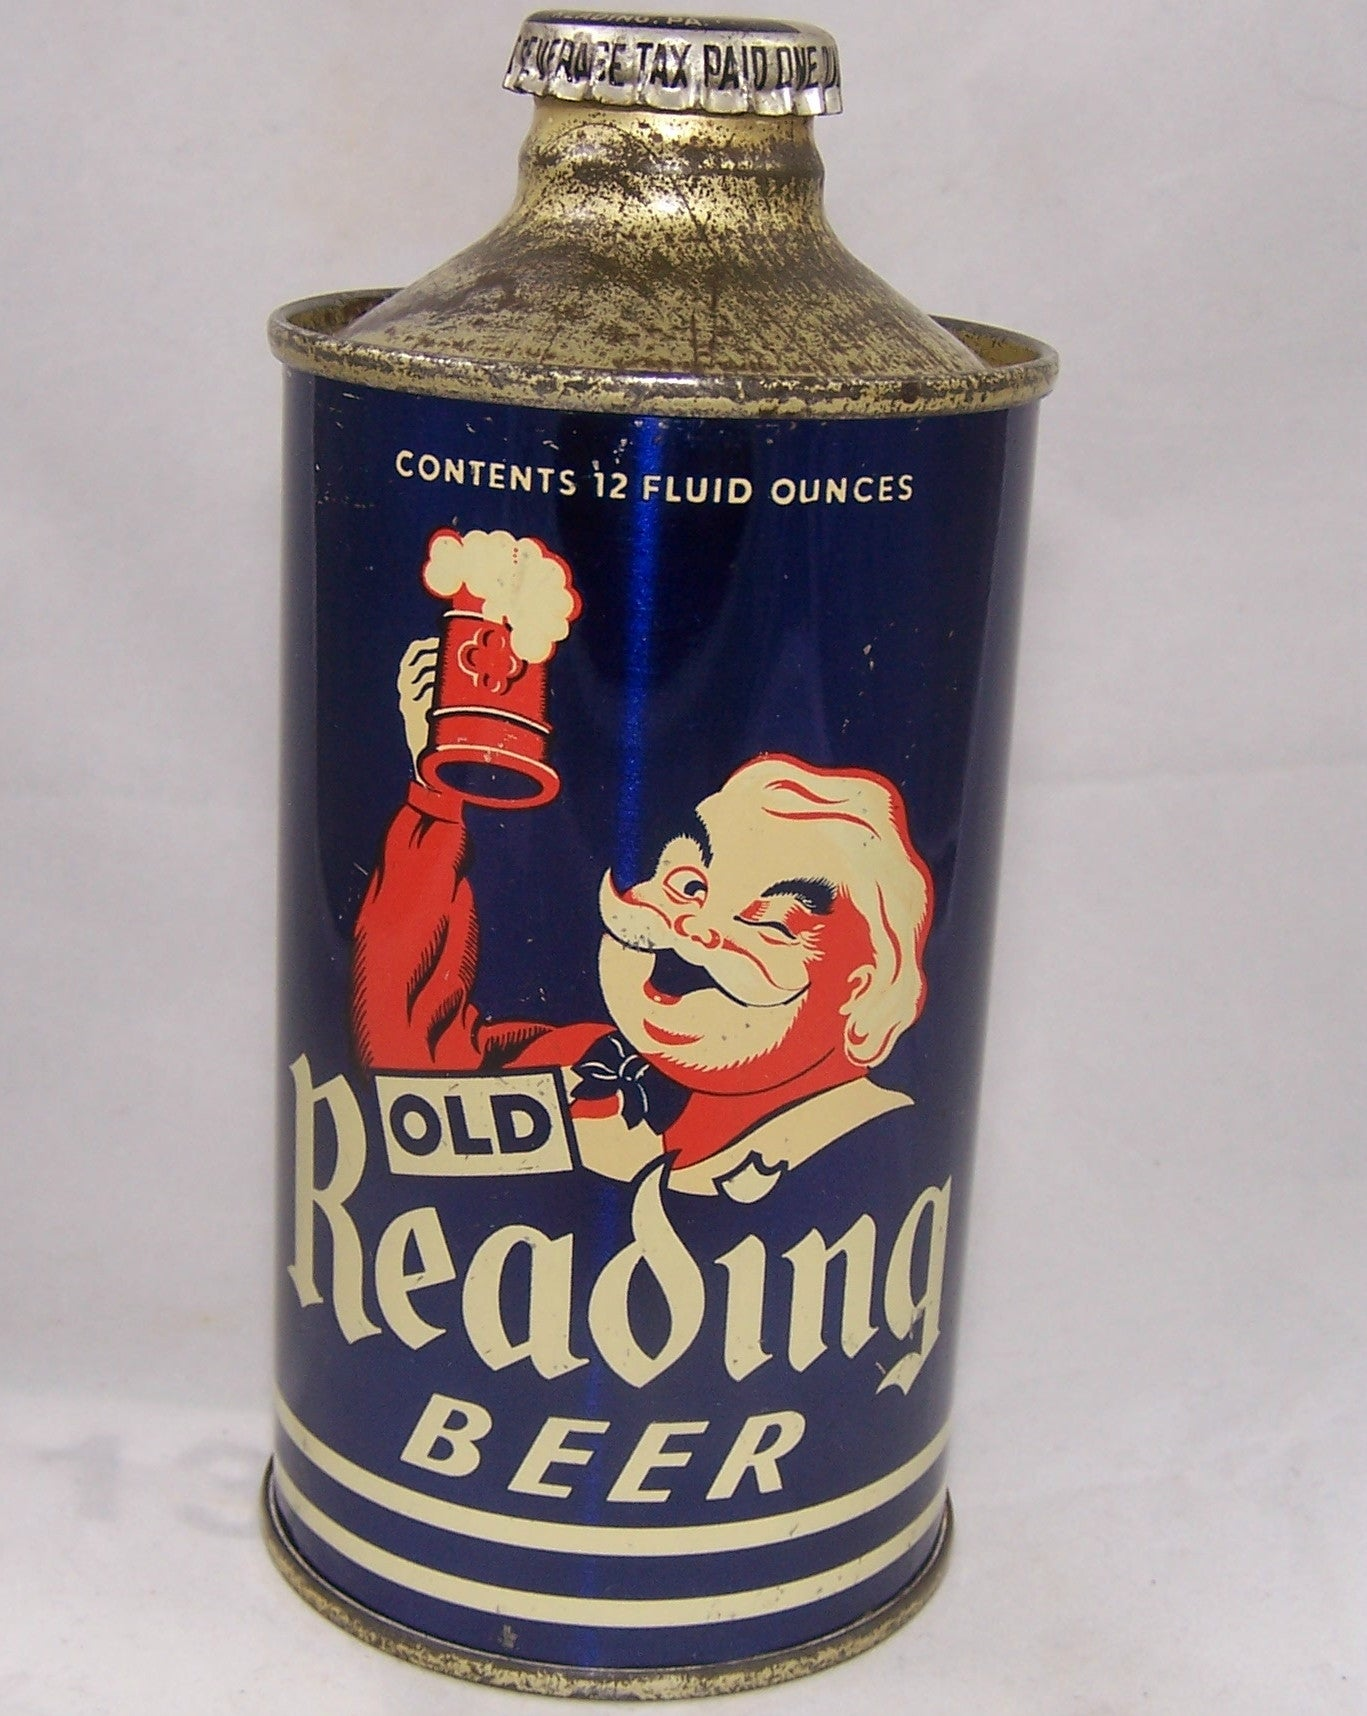 Old Reading Beer, USBC 176-30, Grade 1 to 1/1+ Sold on 09/20/16